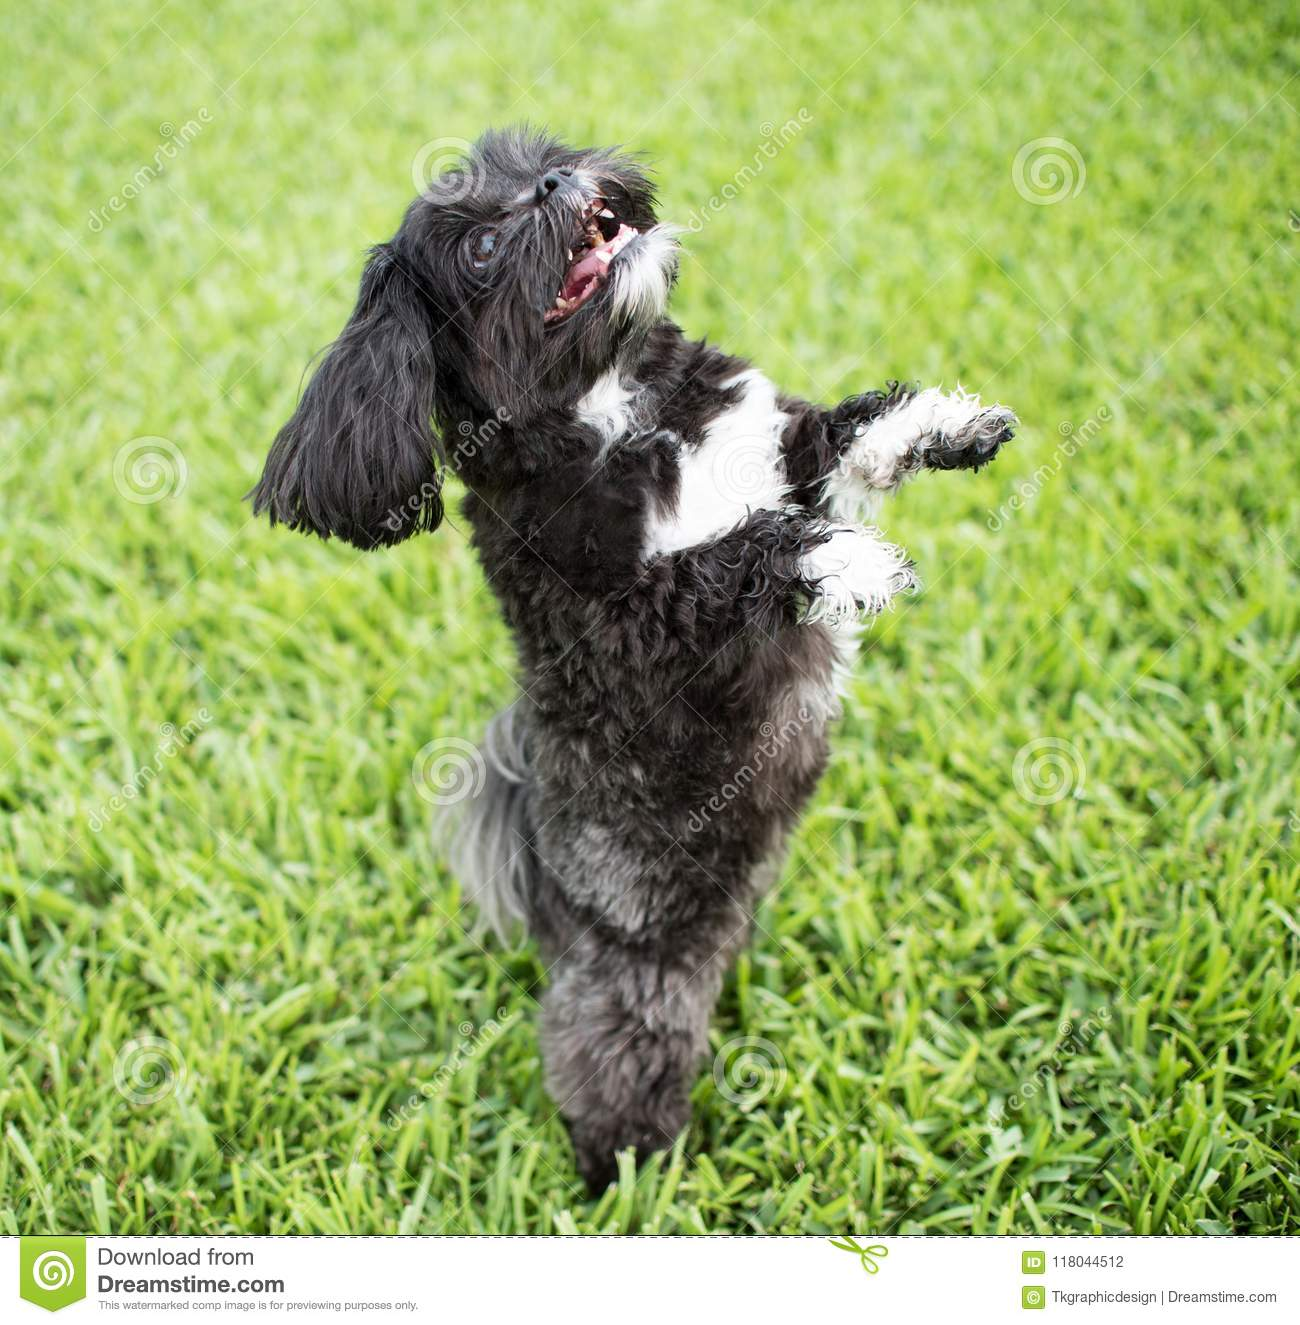 Adorable Miniature Shih Tzu Puppy Dog Stock Photo Image Of